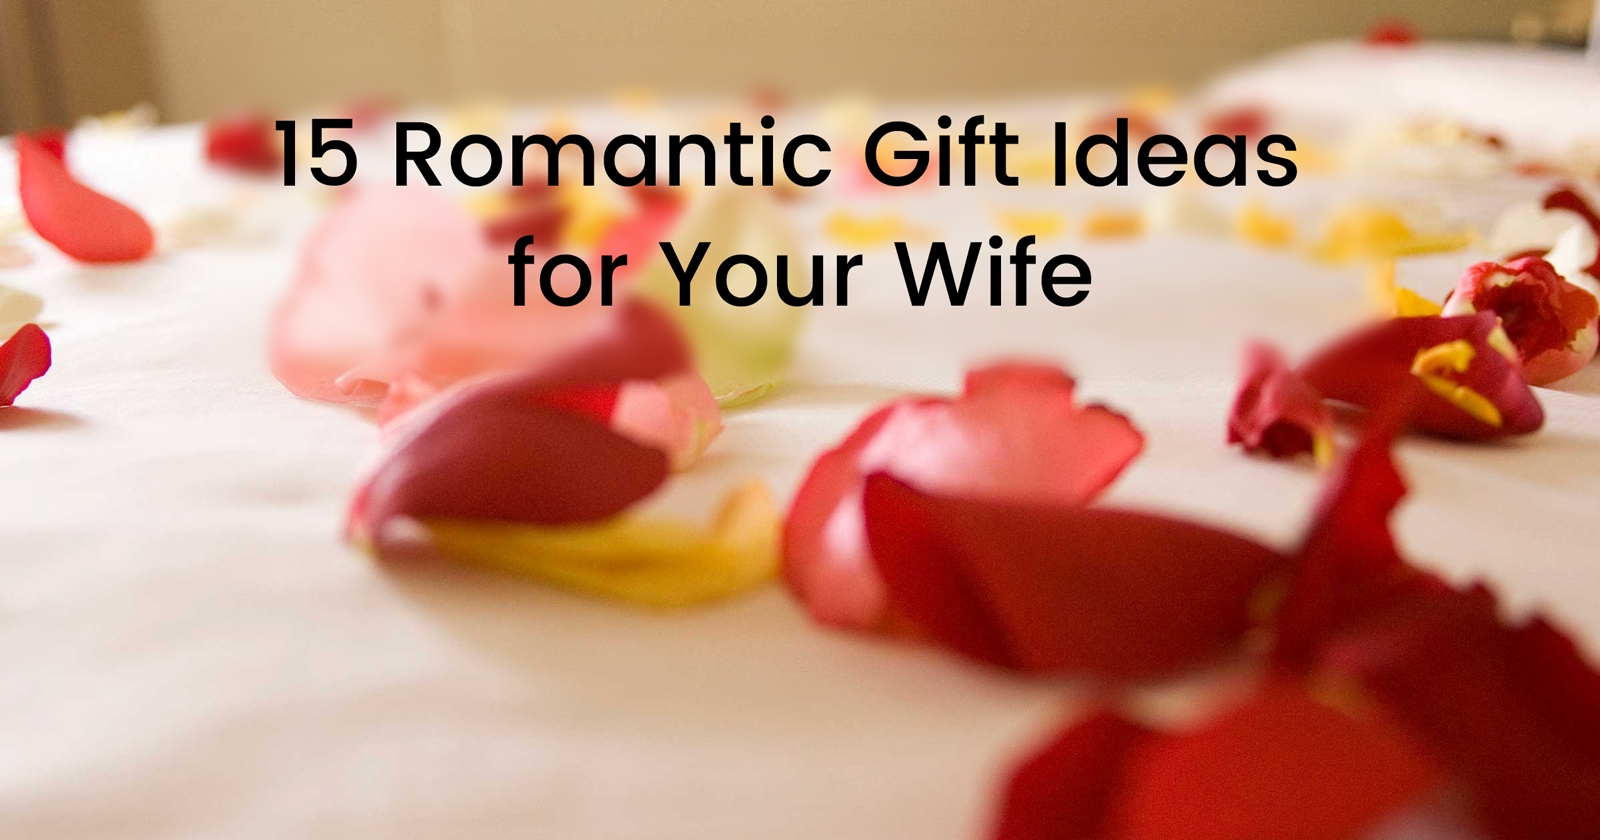 10 Attractive Gift Ideas For The Wife 15 romantic gift ideas for your wife gift help 3 2021